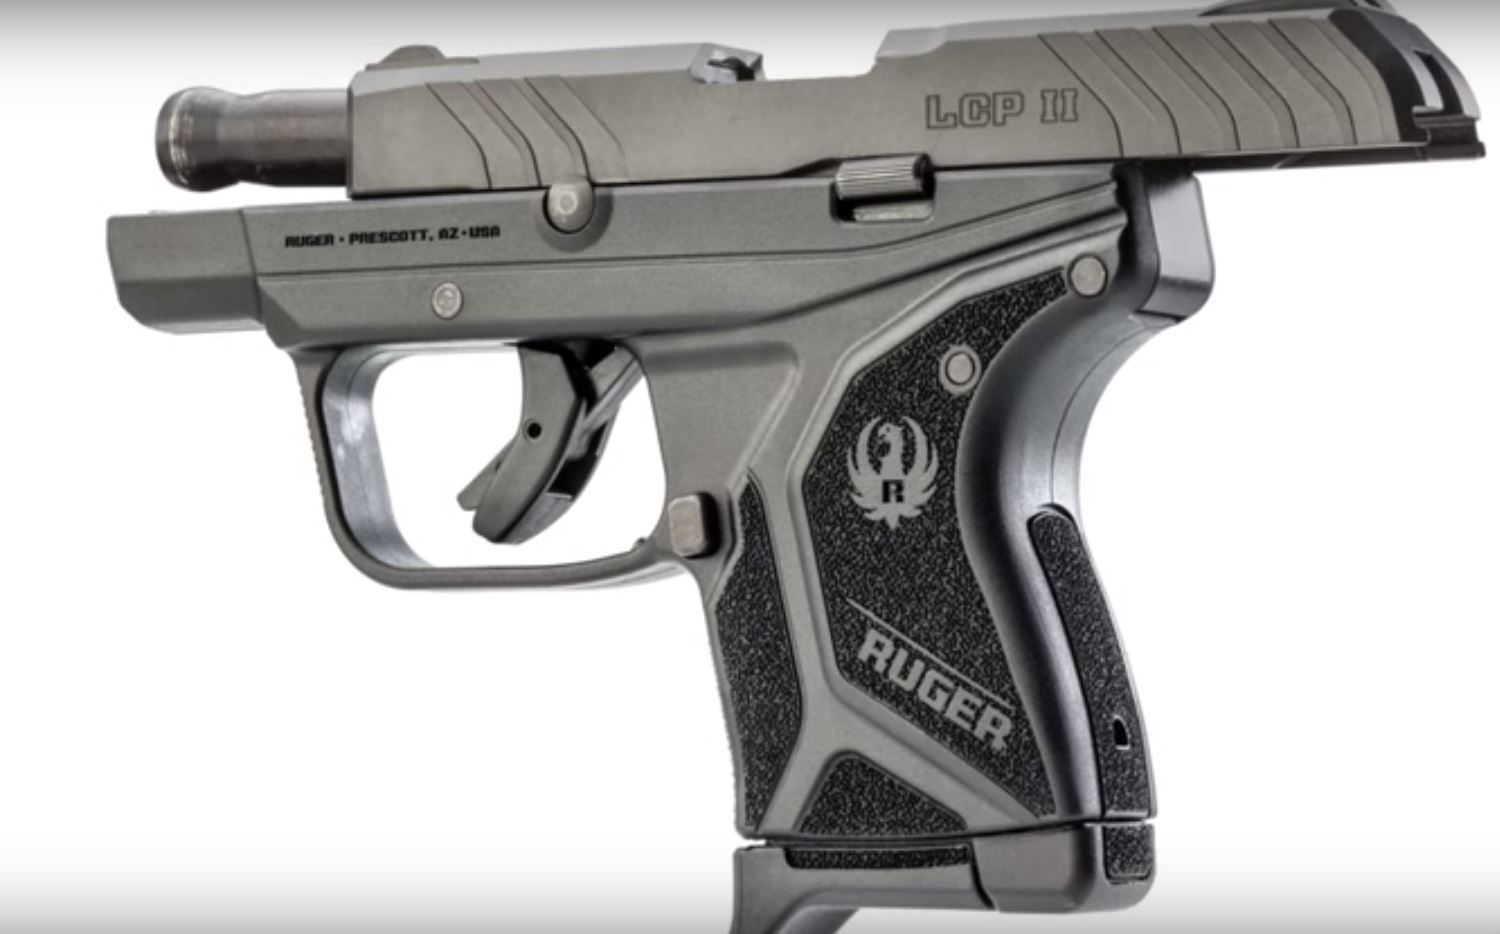 LCP II Ideal for Concealed Carry